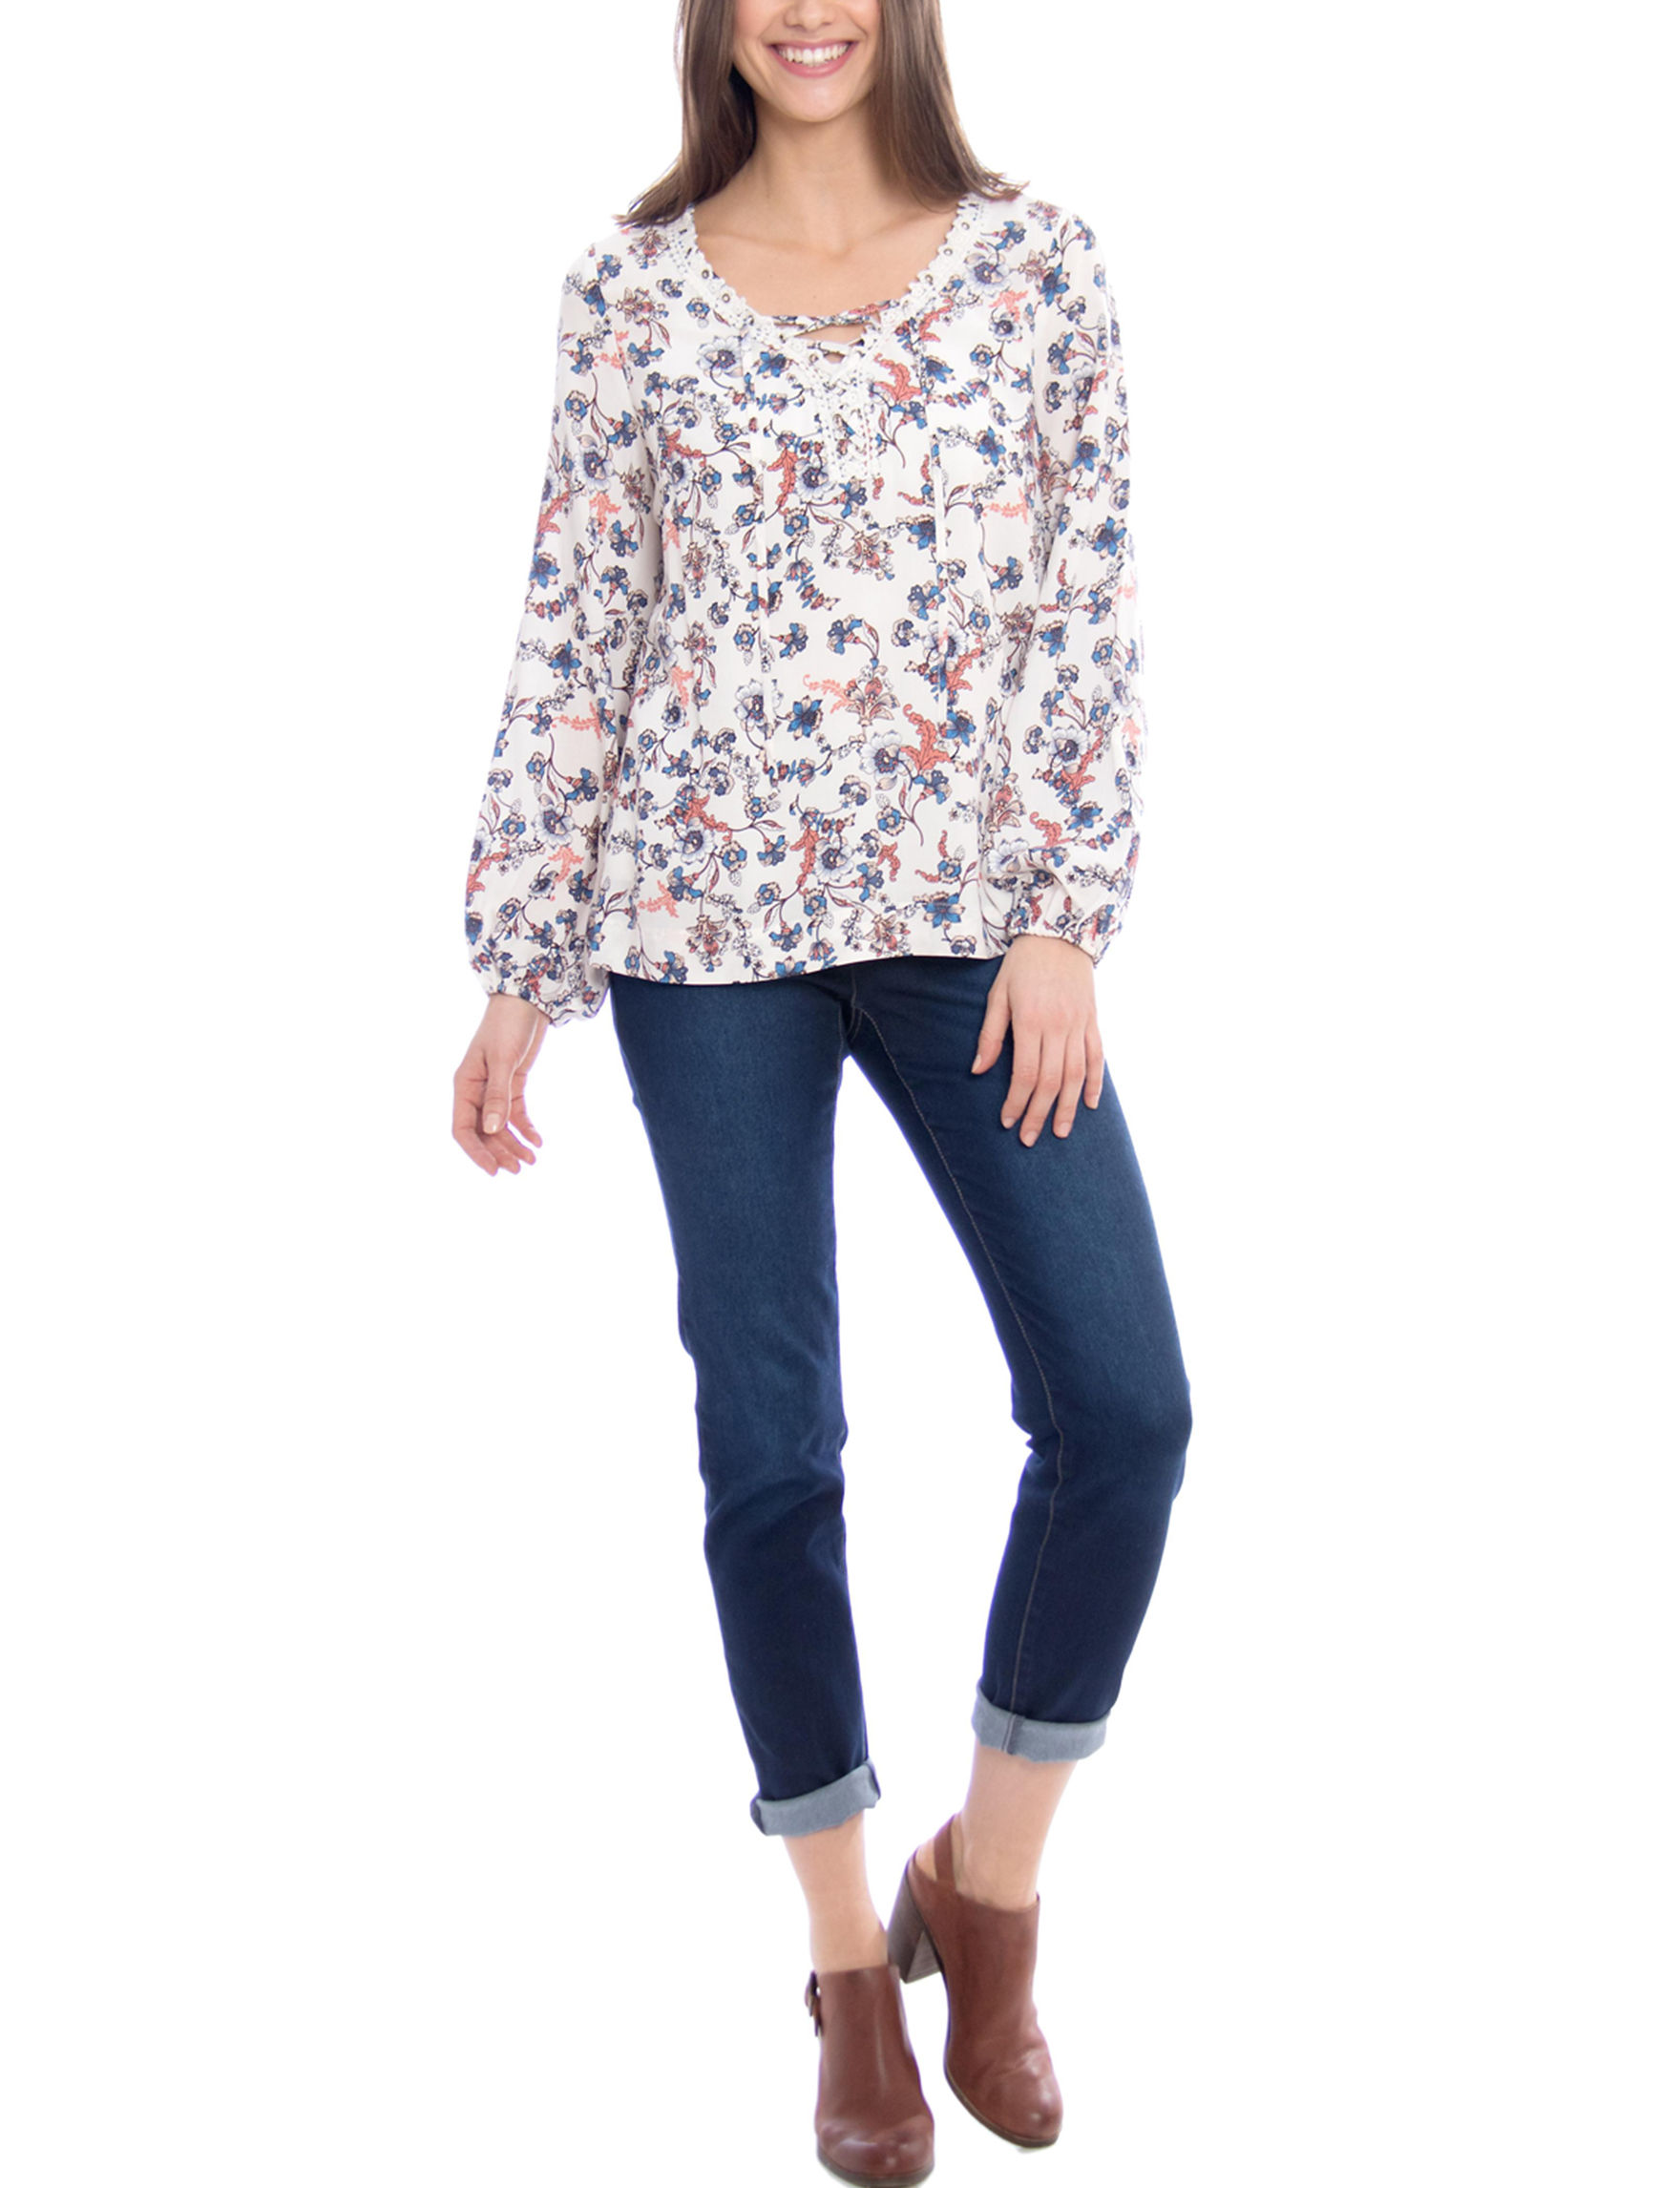 Skyes The Limit White Floral Shirts & Blouses